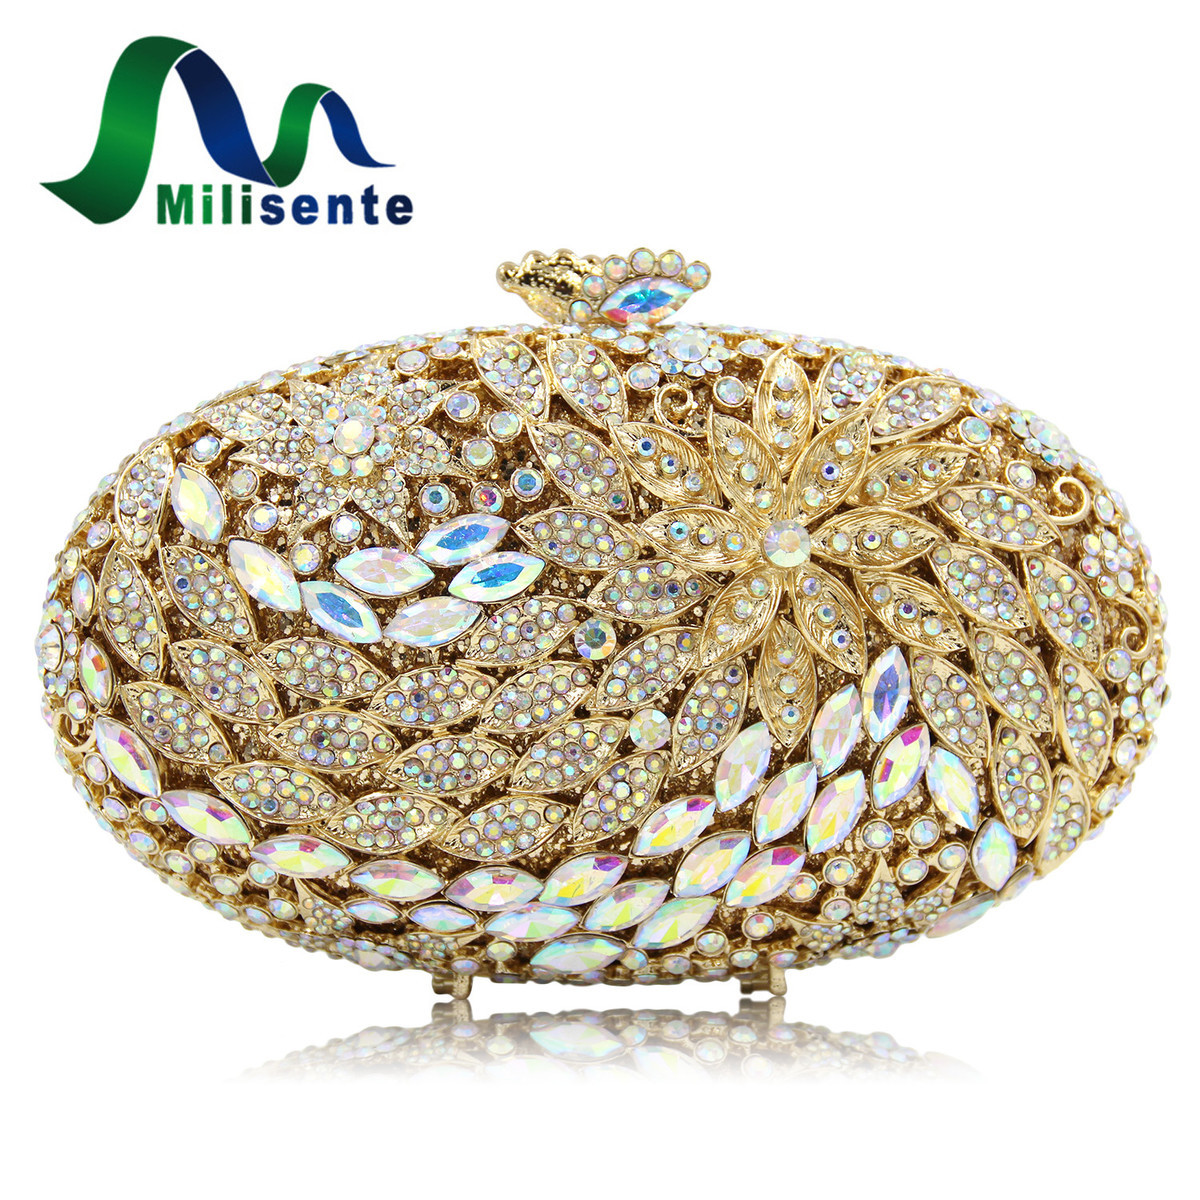 Milisente Women Crystal Clutch Bag Gold Evening Bags Lady Diamond Wedding Clutches Female Party Purses 2017 lady hot sale black gold white silver clutch women elegant v diamond design wedding handbag female party bag evening bags